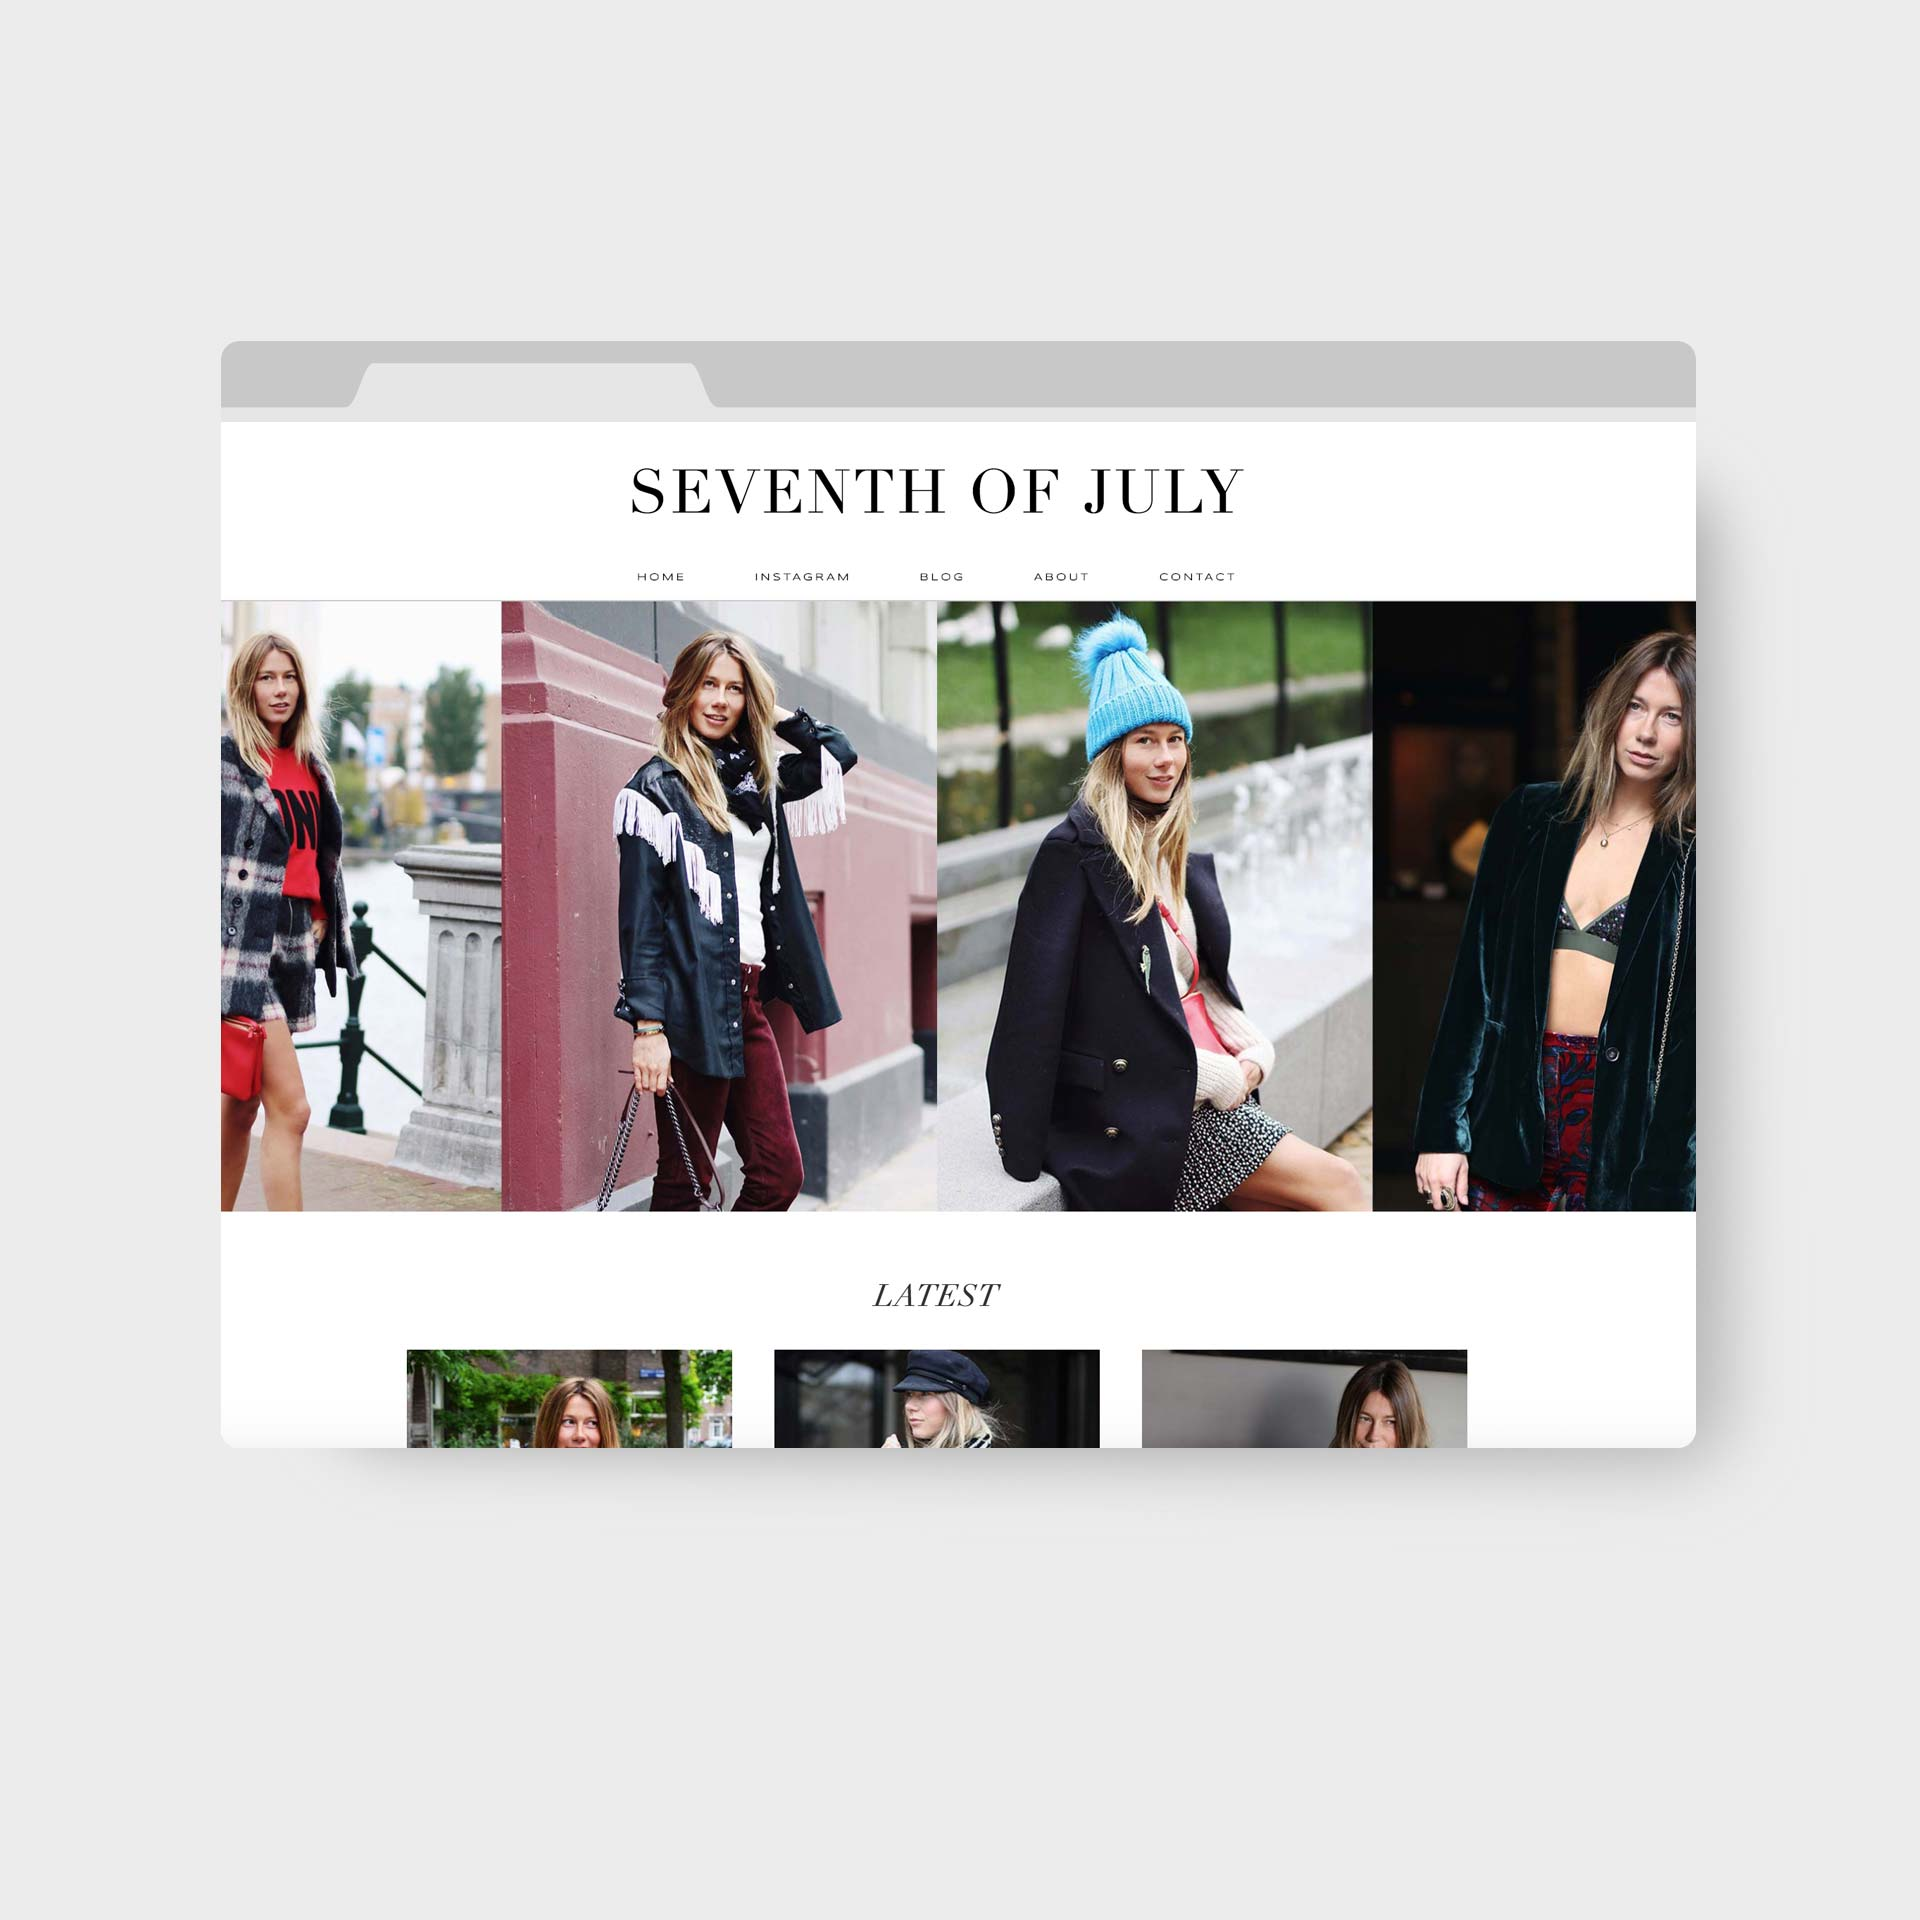 Seventh of July Webdesign